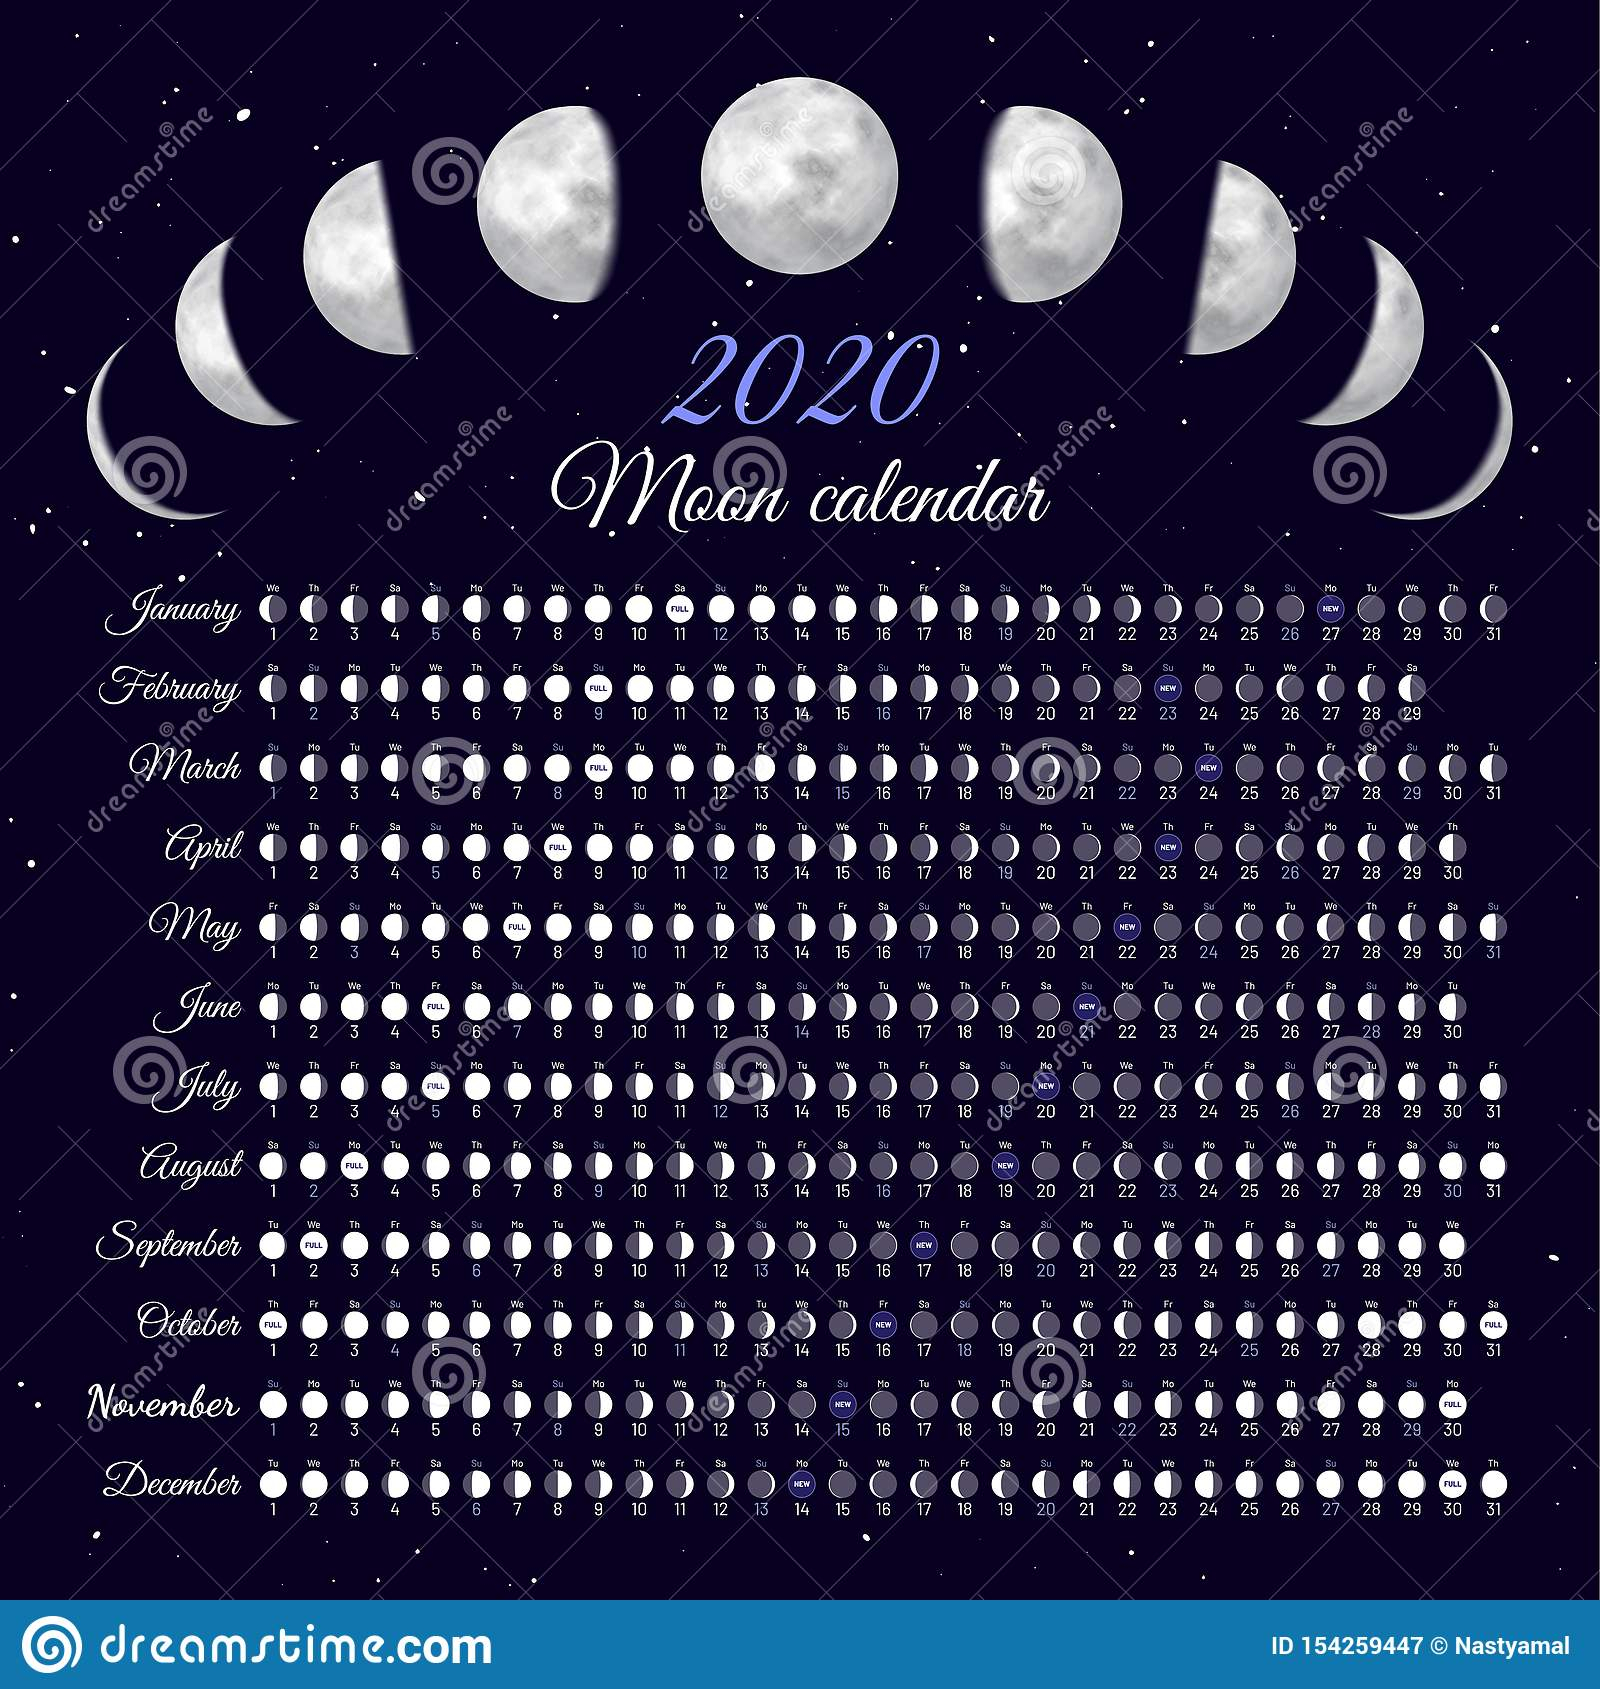 Calendar With Moon Phases